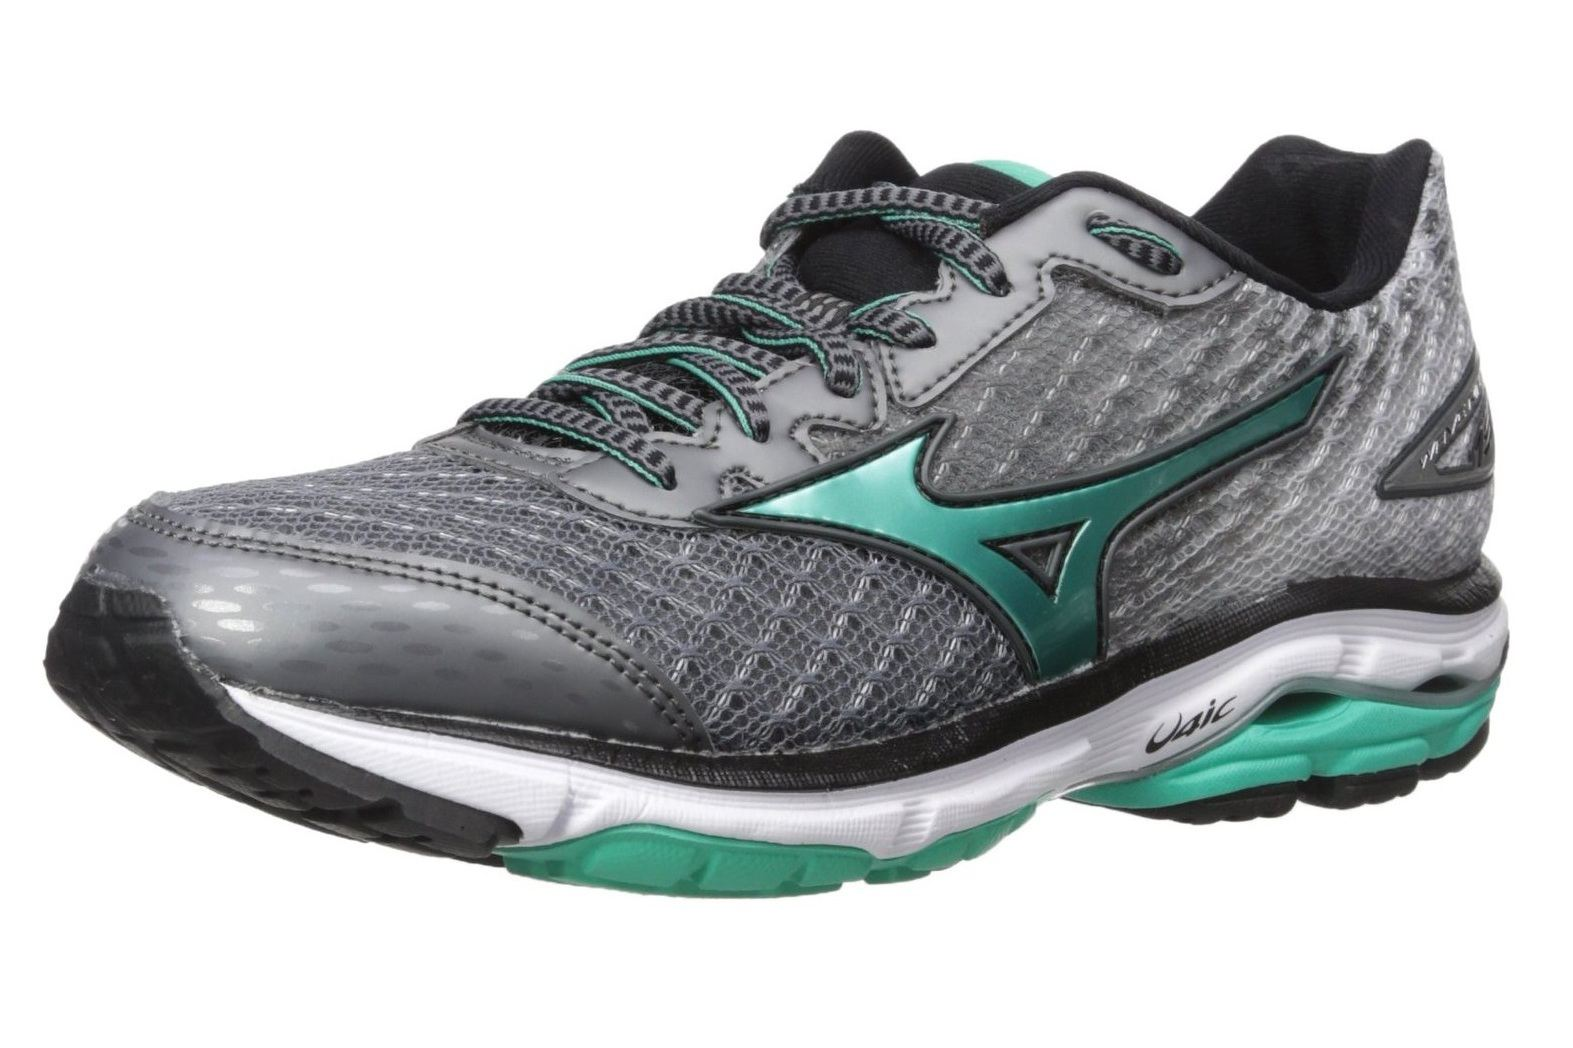 b3c77ecc8a4b The 9 Best Cushioned Shoes for Walkers of 2019